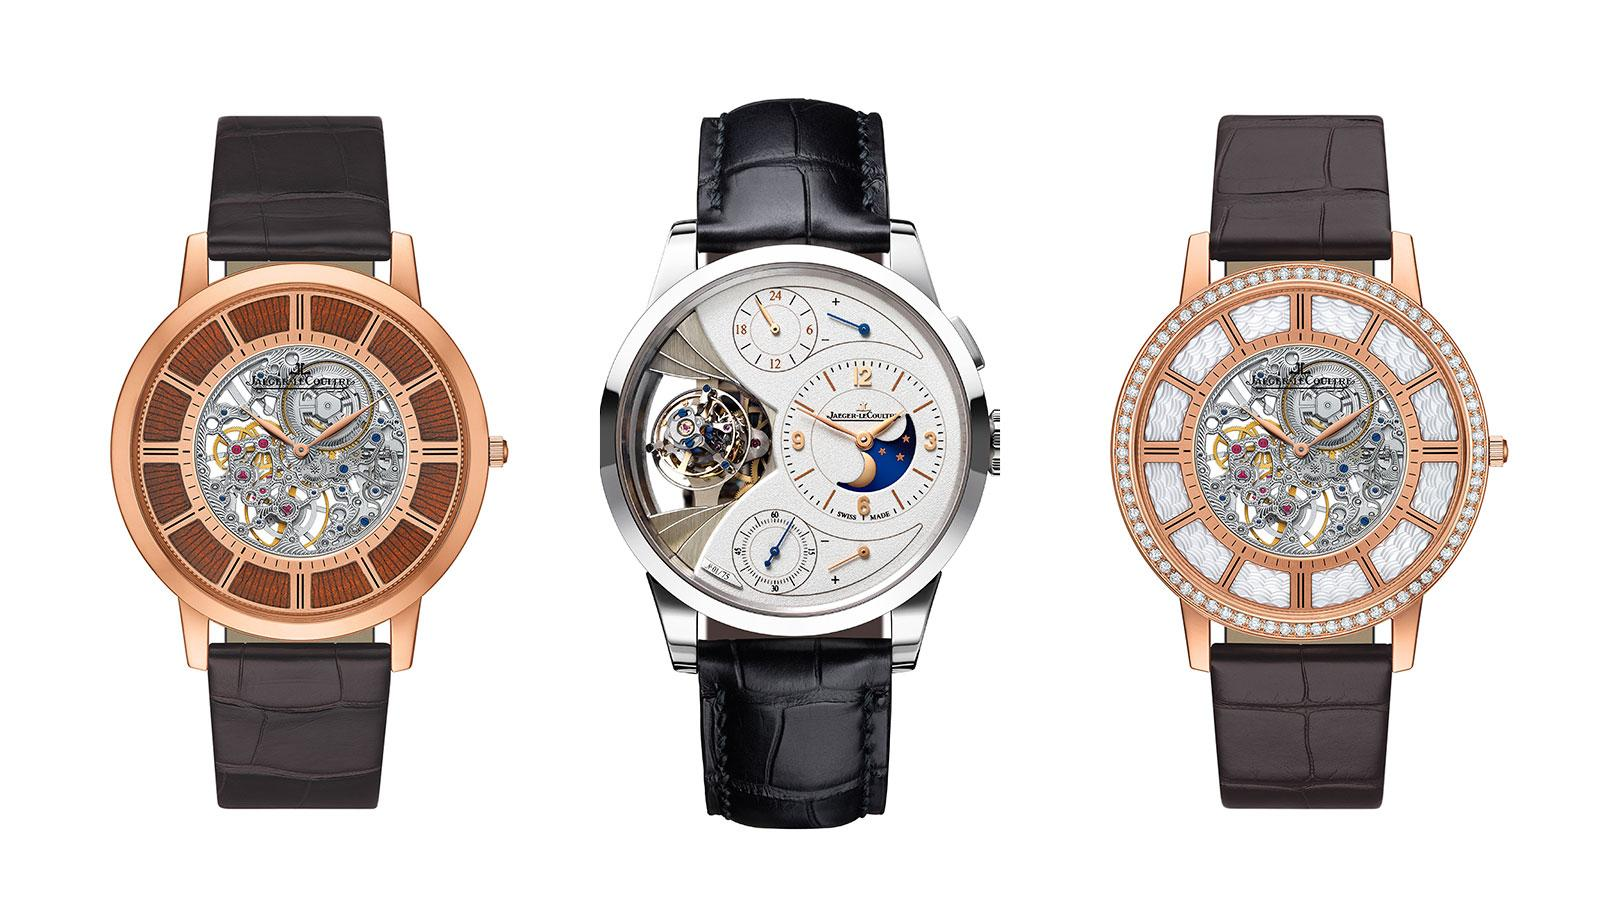 Jaeger-LeCoultre Shows Off Watch Masterworks at the Venice Film Festival